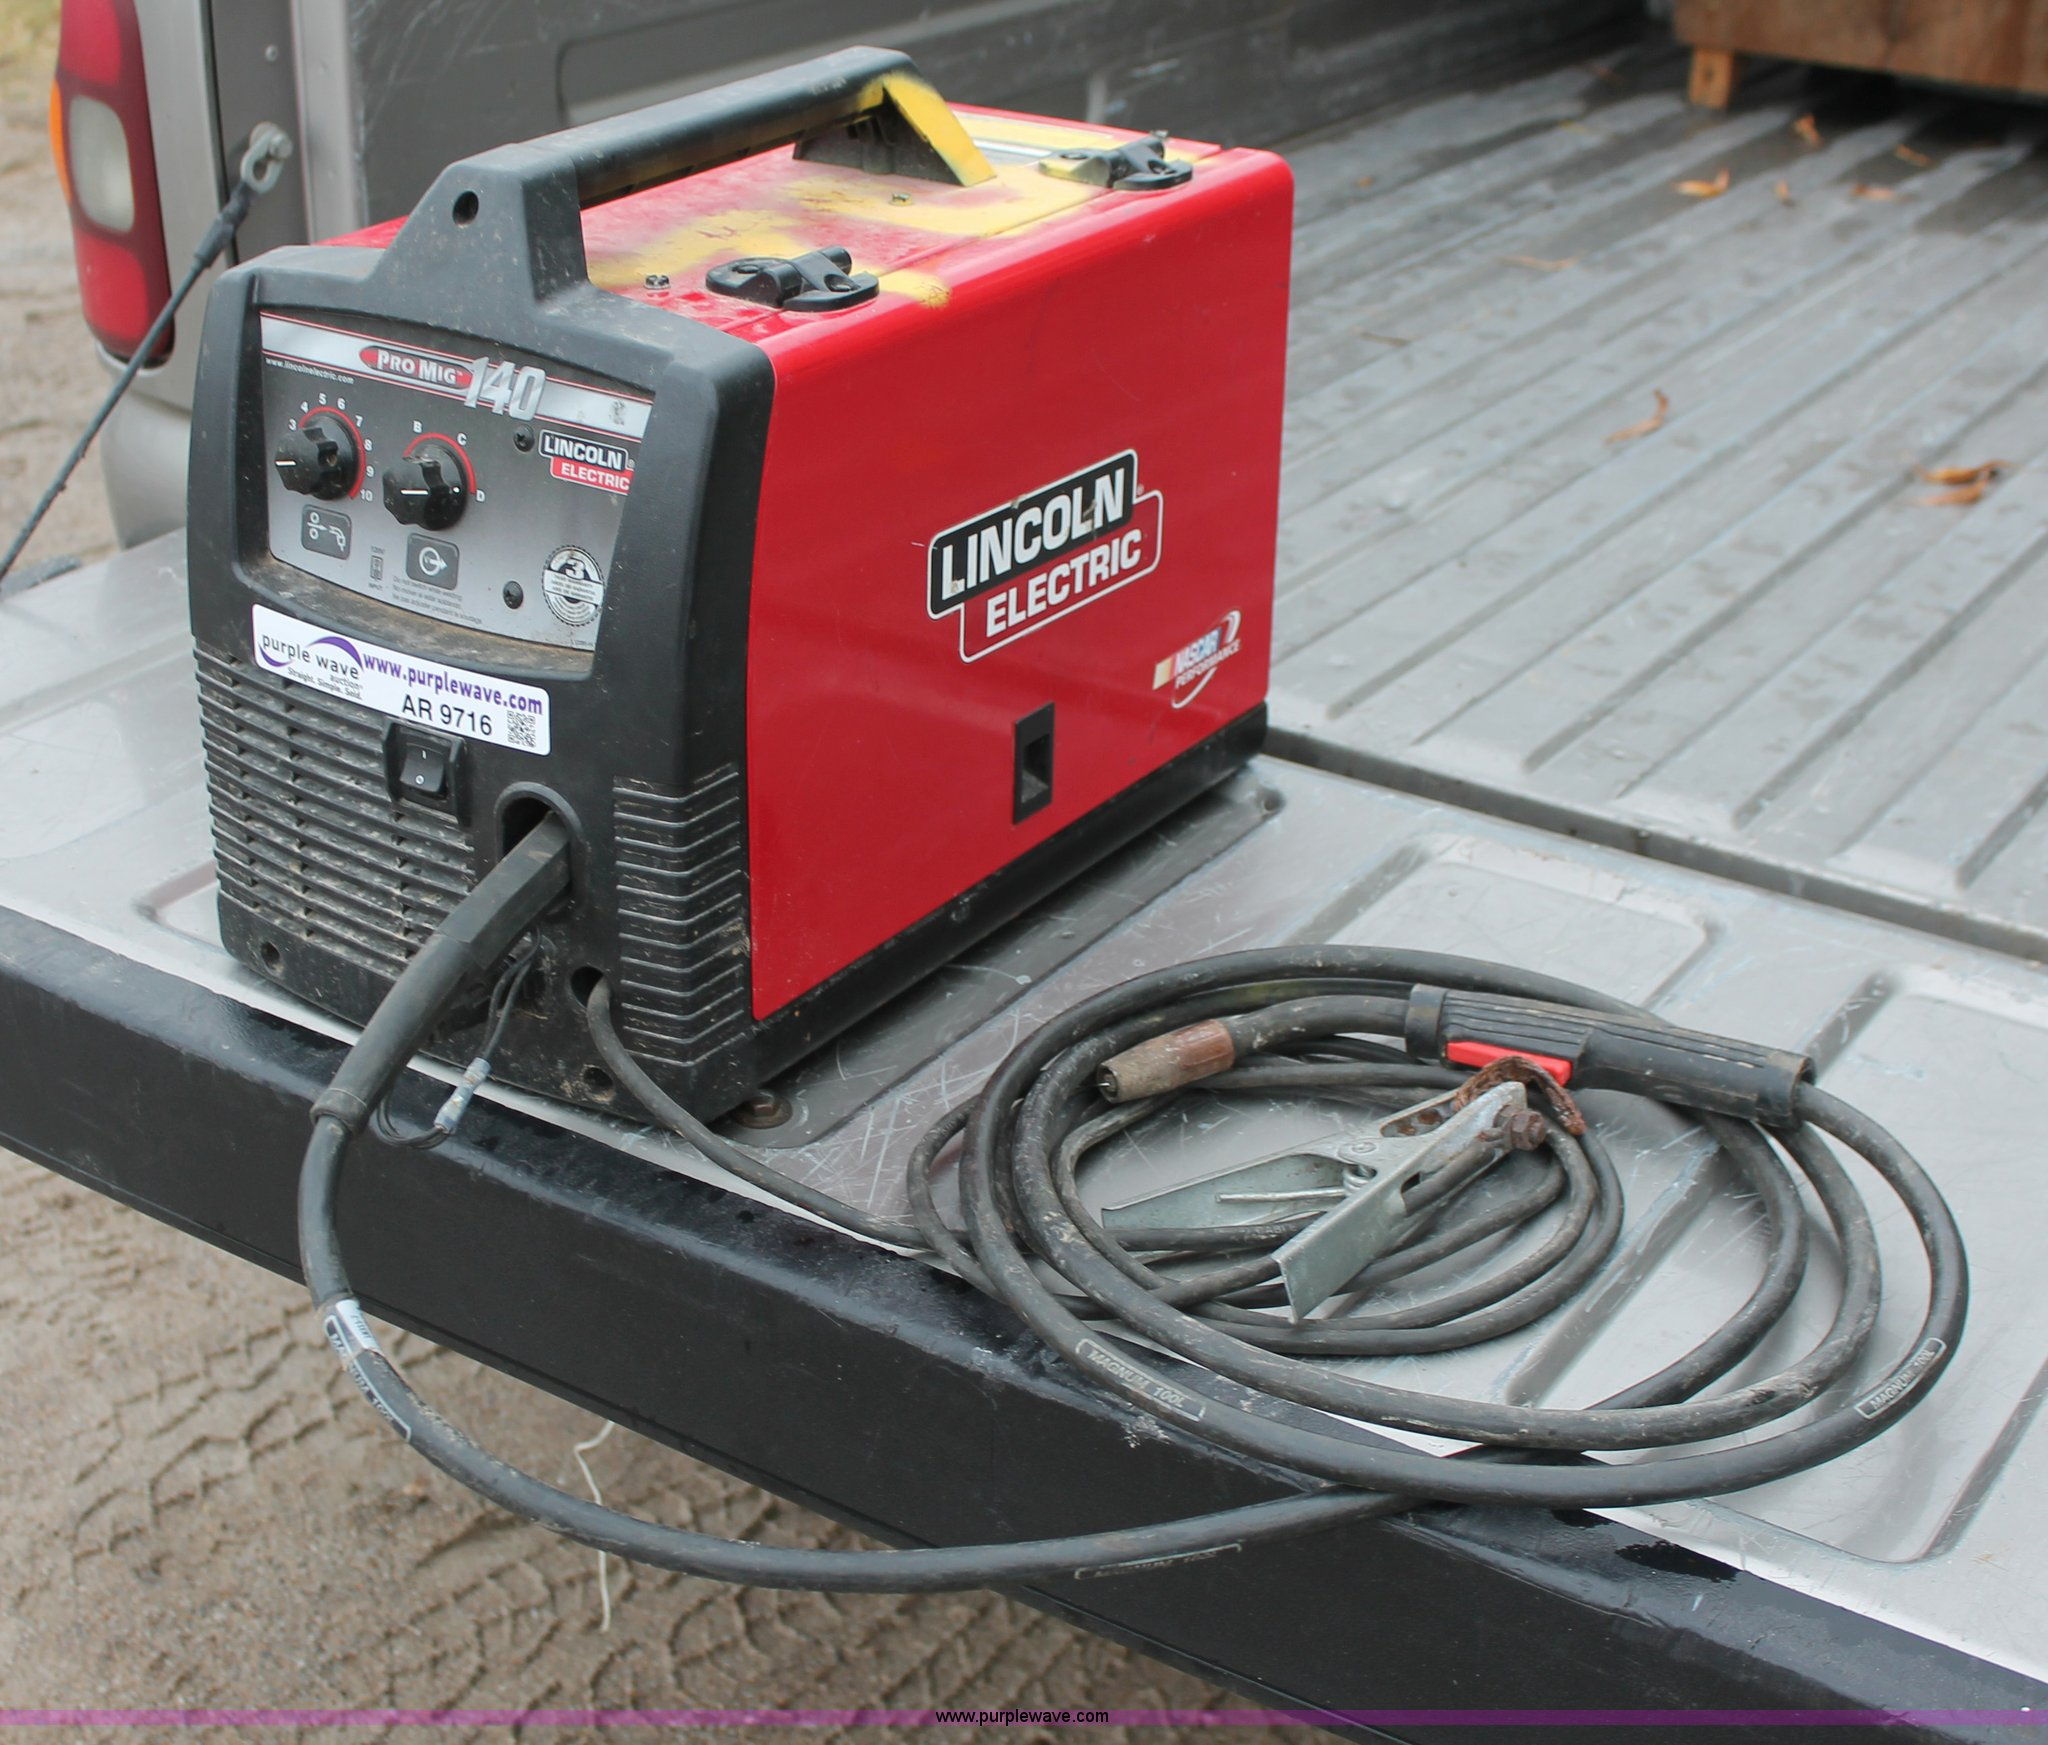 Lincoln Pro Mig 140 Wire Size Center Circuitbending A Funky Furby 7 Performance For One Electric Welder Item Ar9716 Sold Tu Rh Purplewave Com 135 Parts Specs